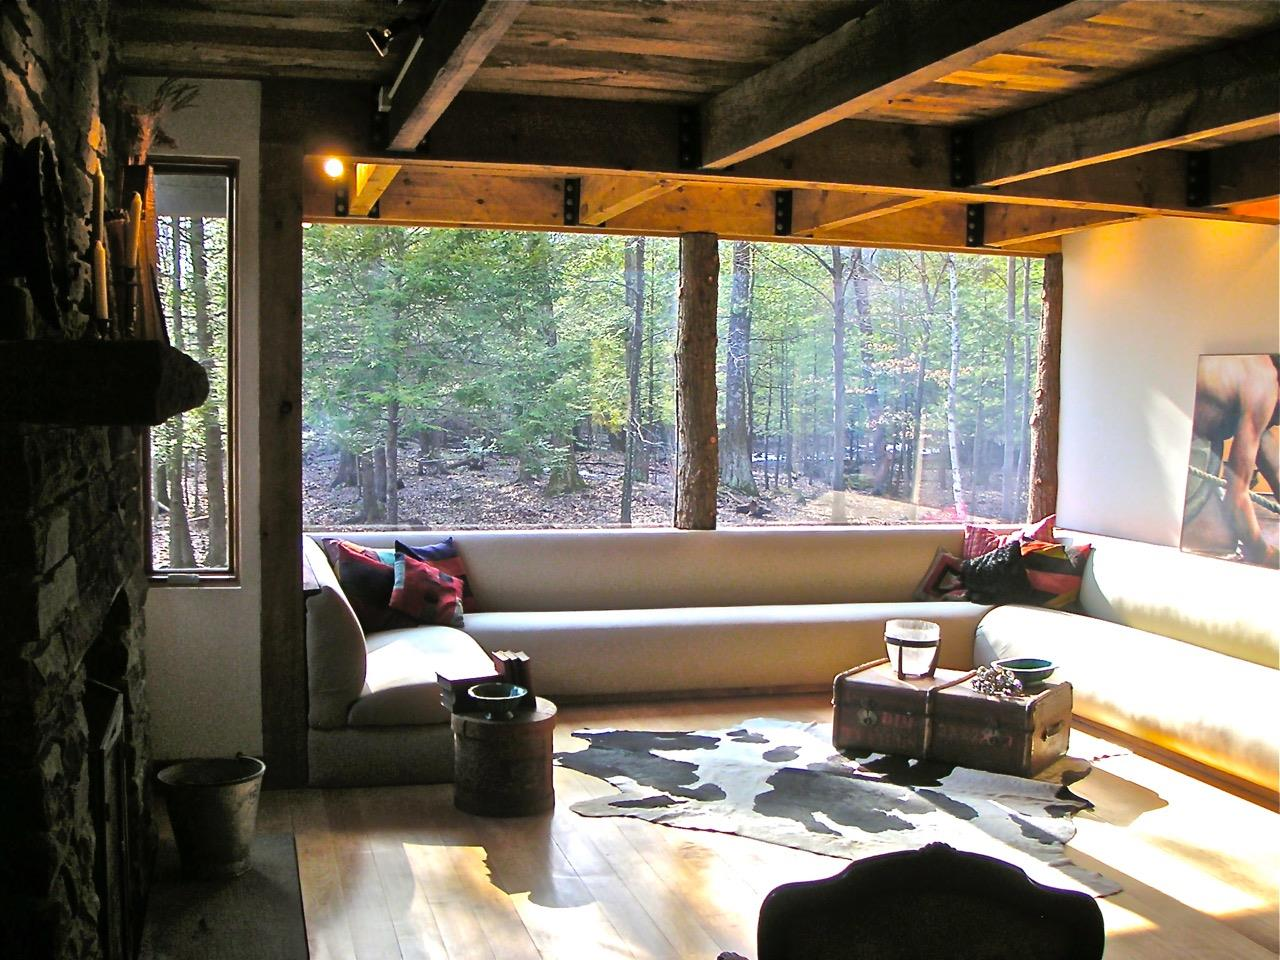 choosing rustic living room. Rustic Living Room With Forest View - Poughkeepsie, NY Choosing